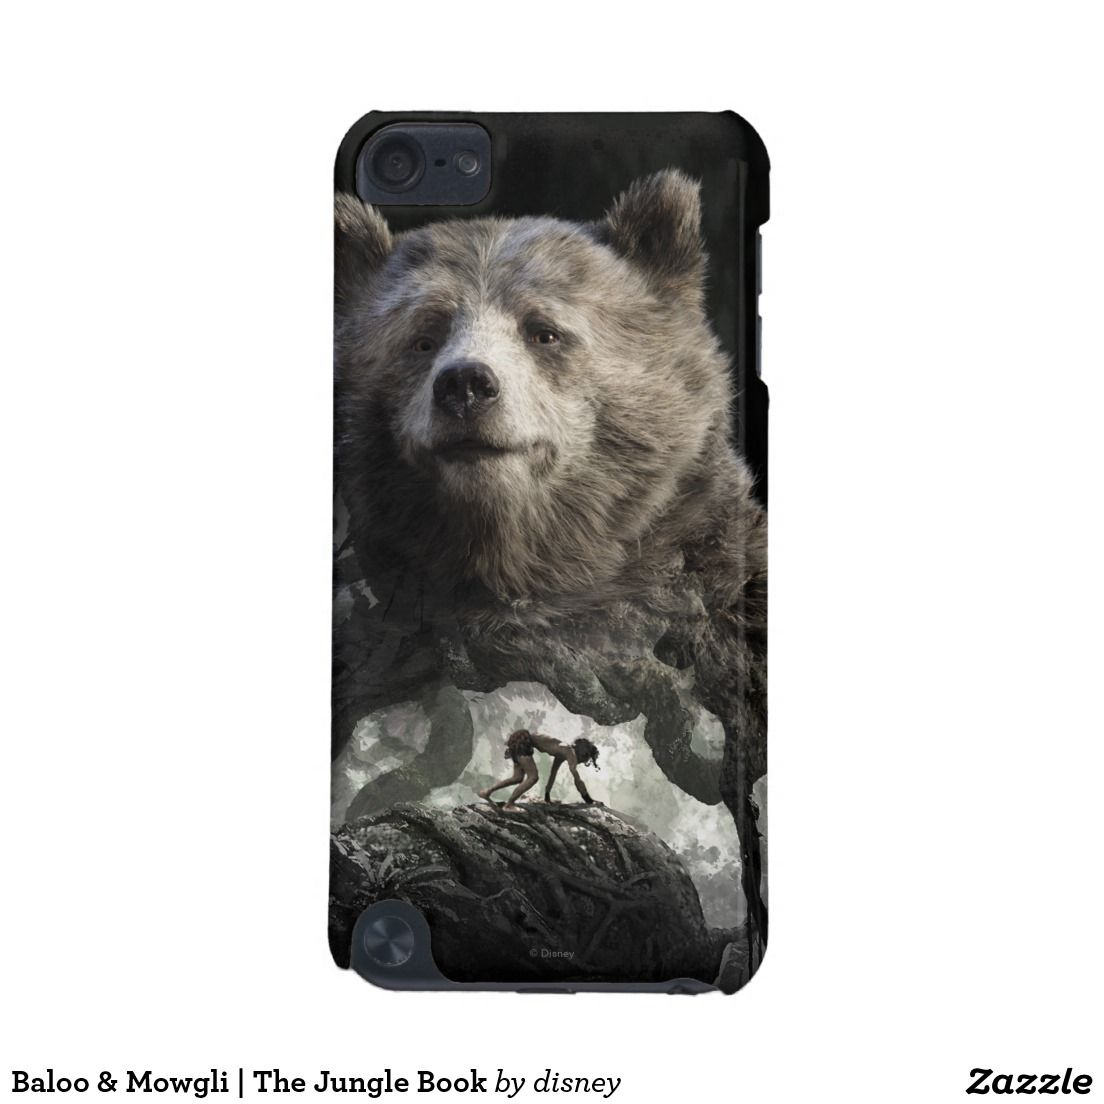 Baloo & Mowgli | The Jungle Book iPod Touch (5th Generation) Cover #carcasas #cases